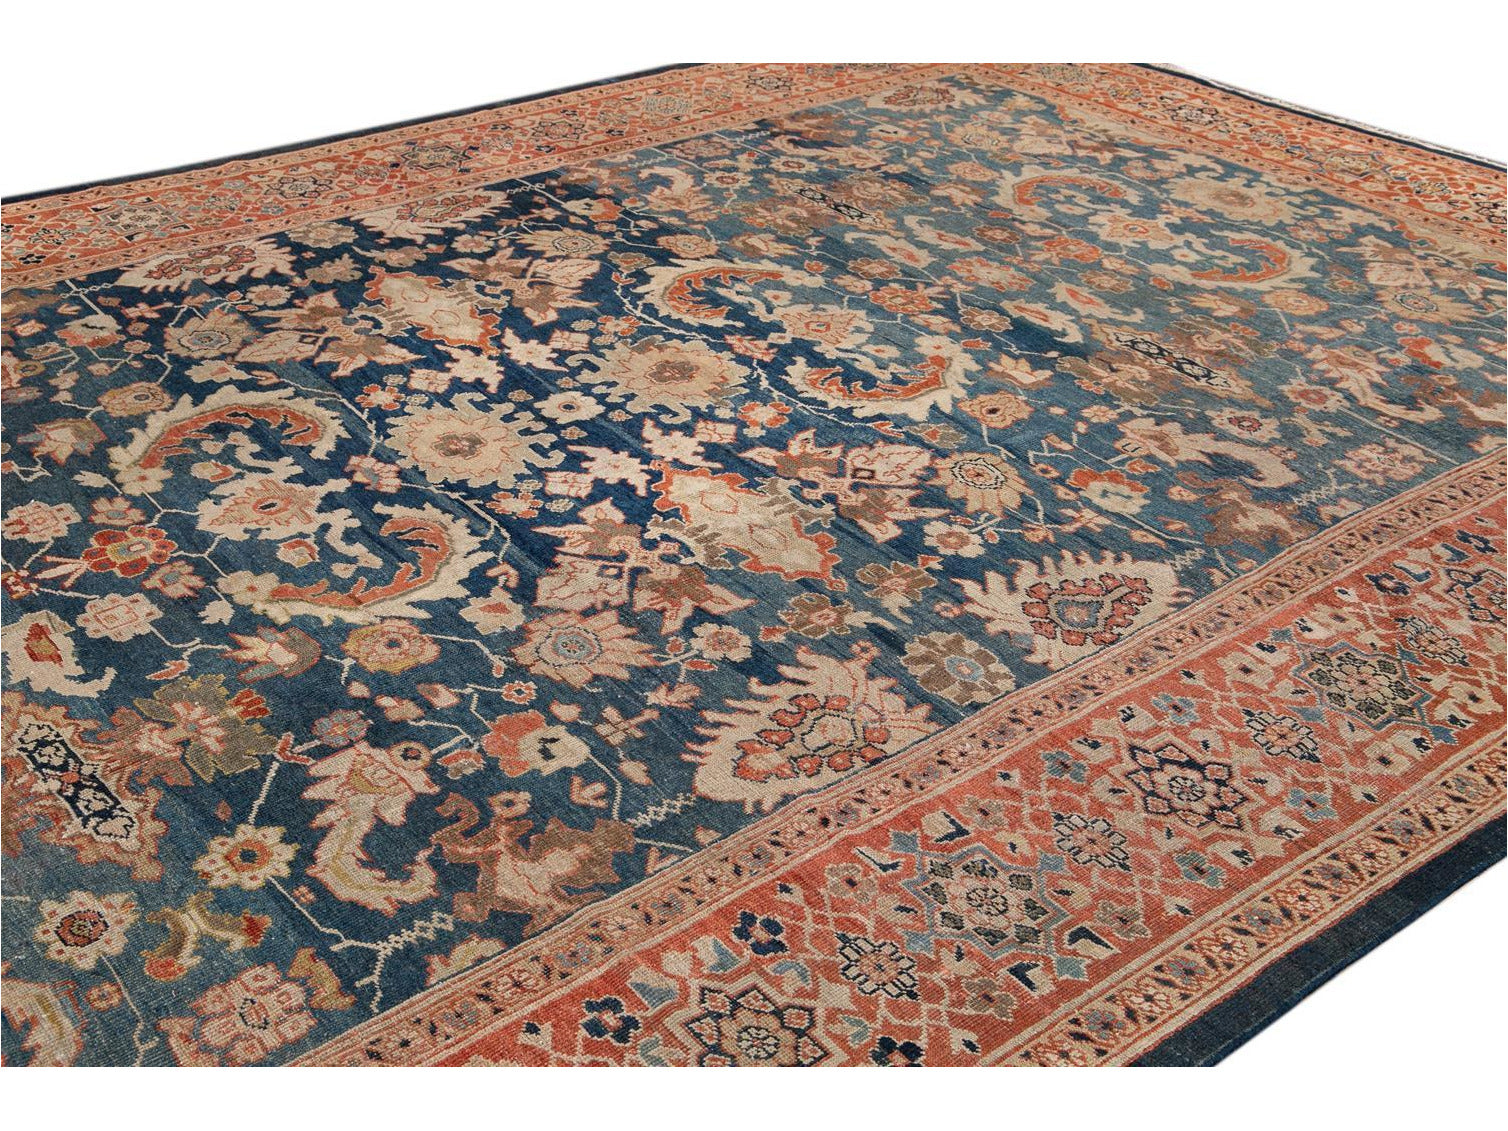 Early 20th Century Antique Sultanabad Wool Rug 11 X 14